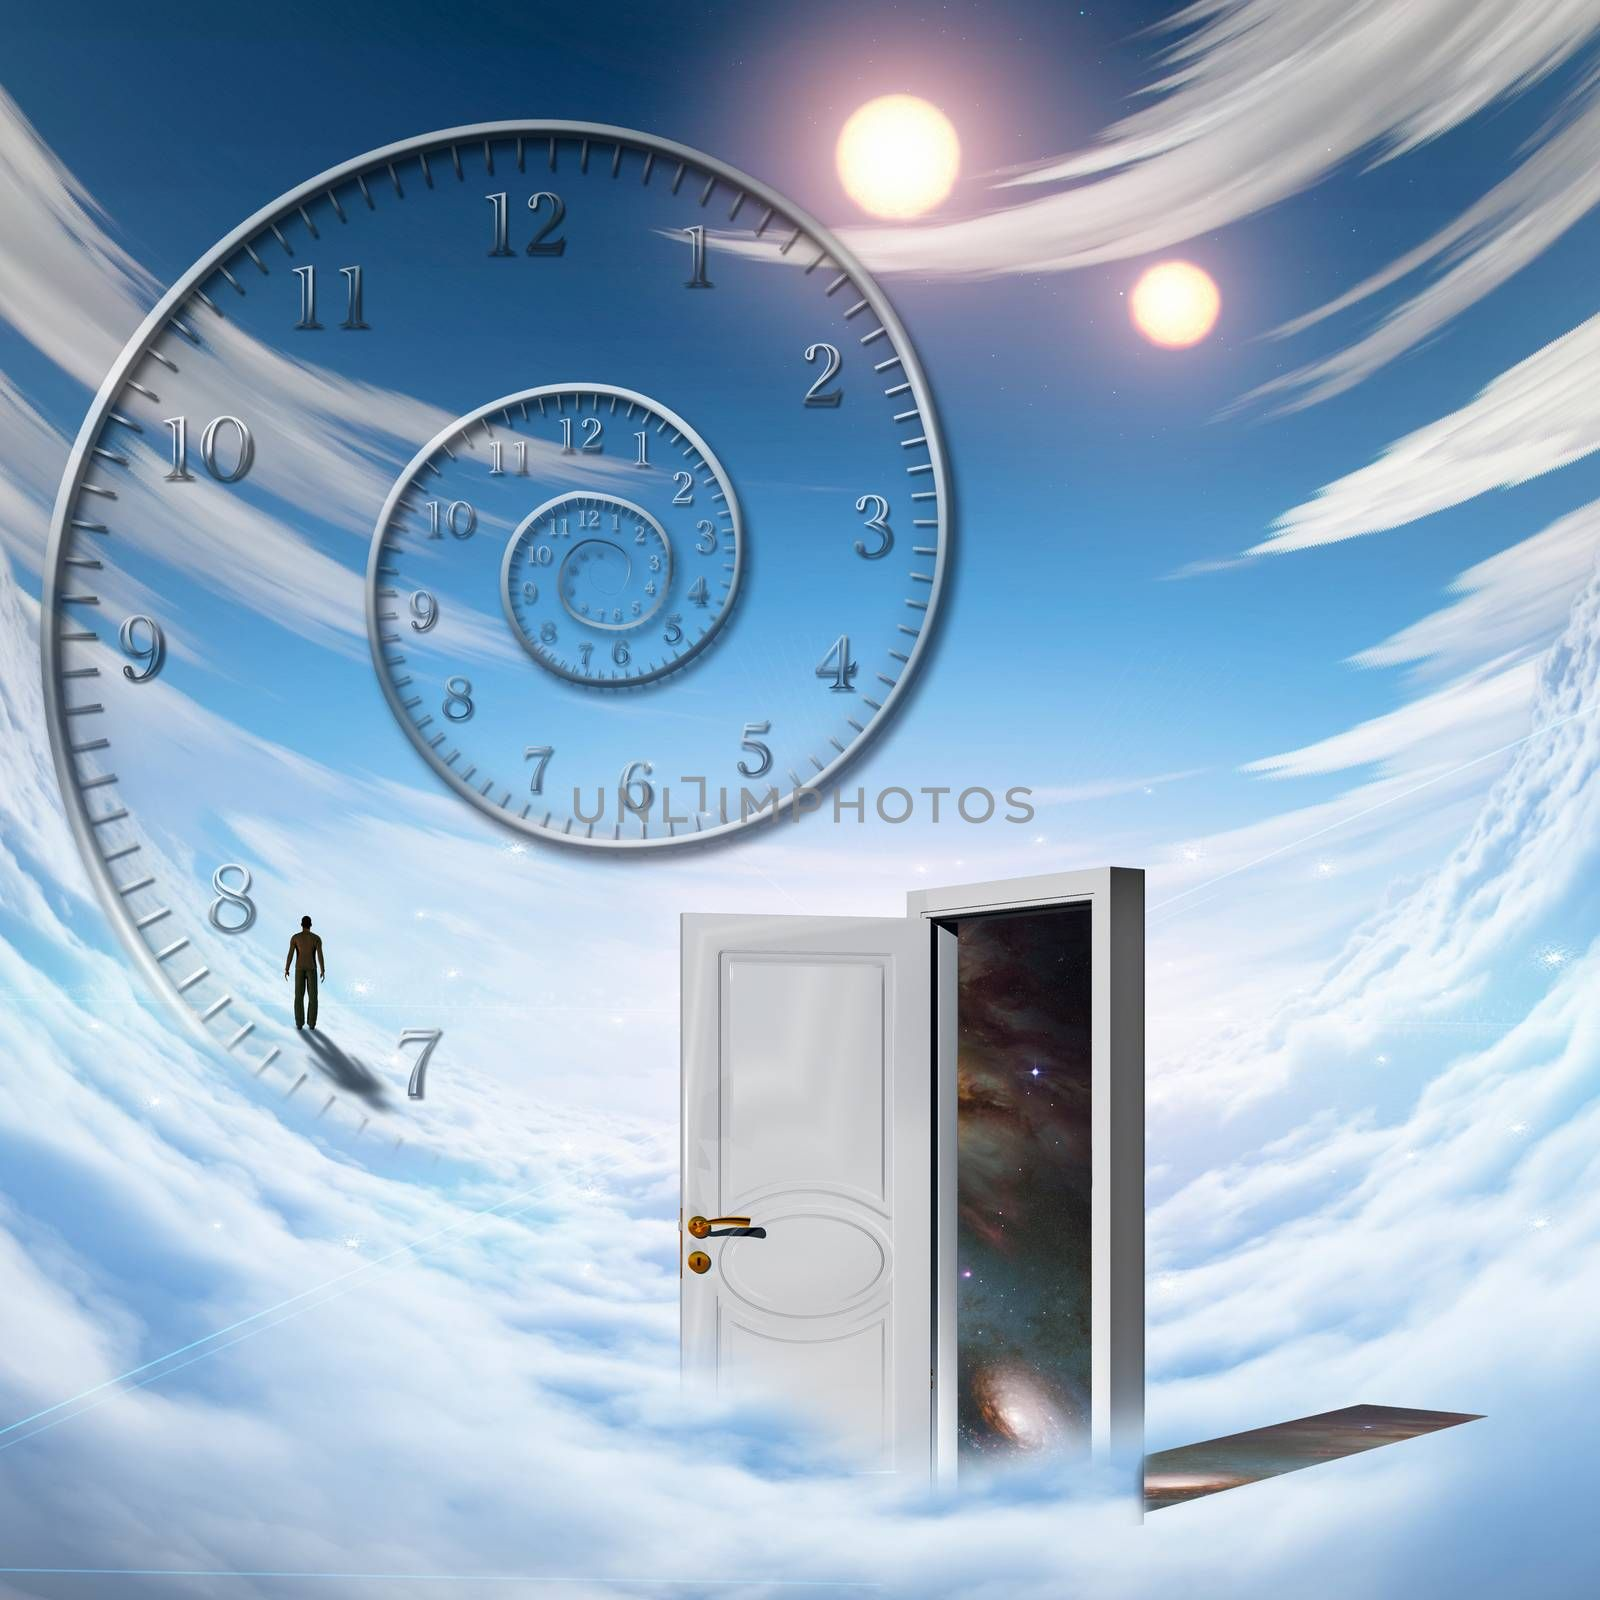 Surrealism. Spiral of time. Lonely man in a distance. Opened door to another dimension